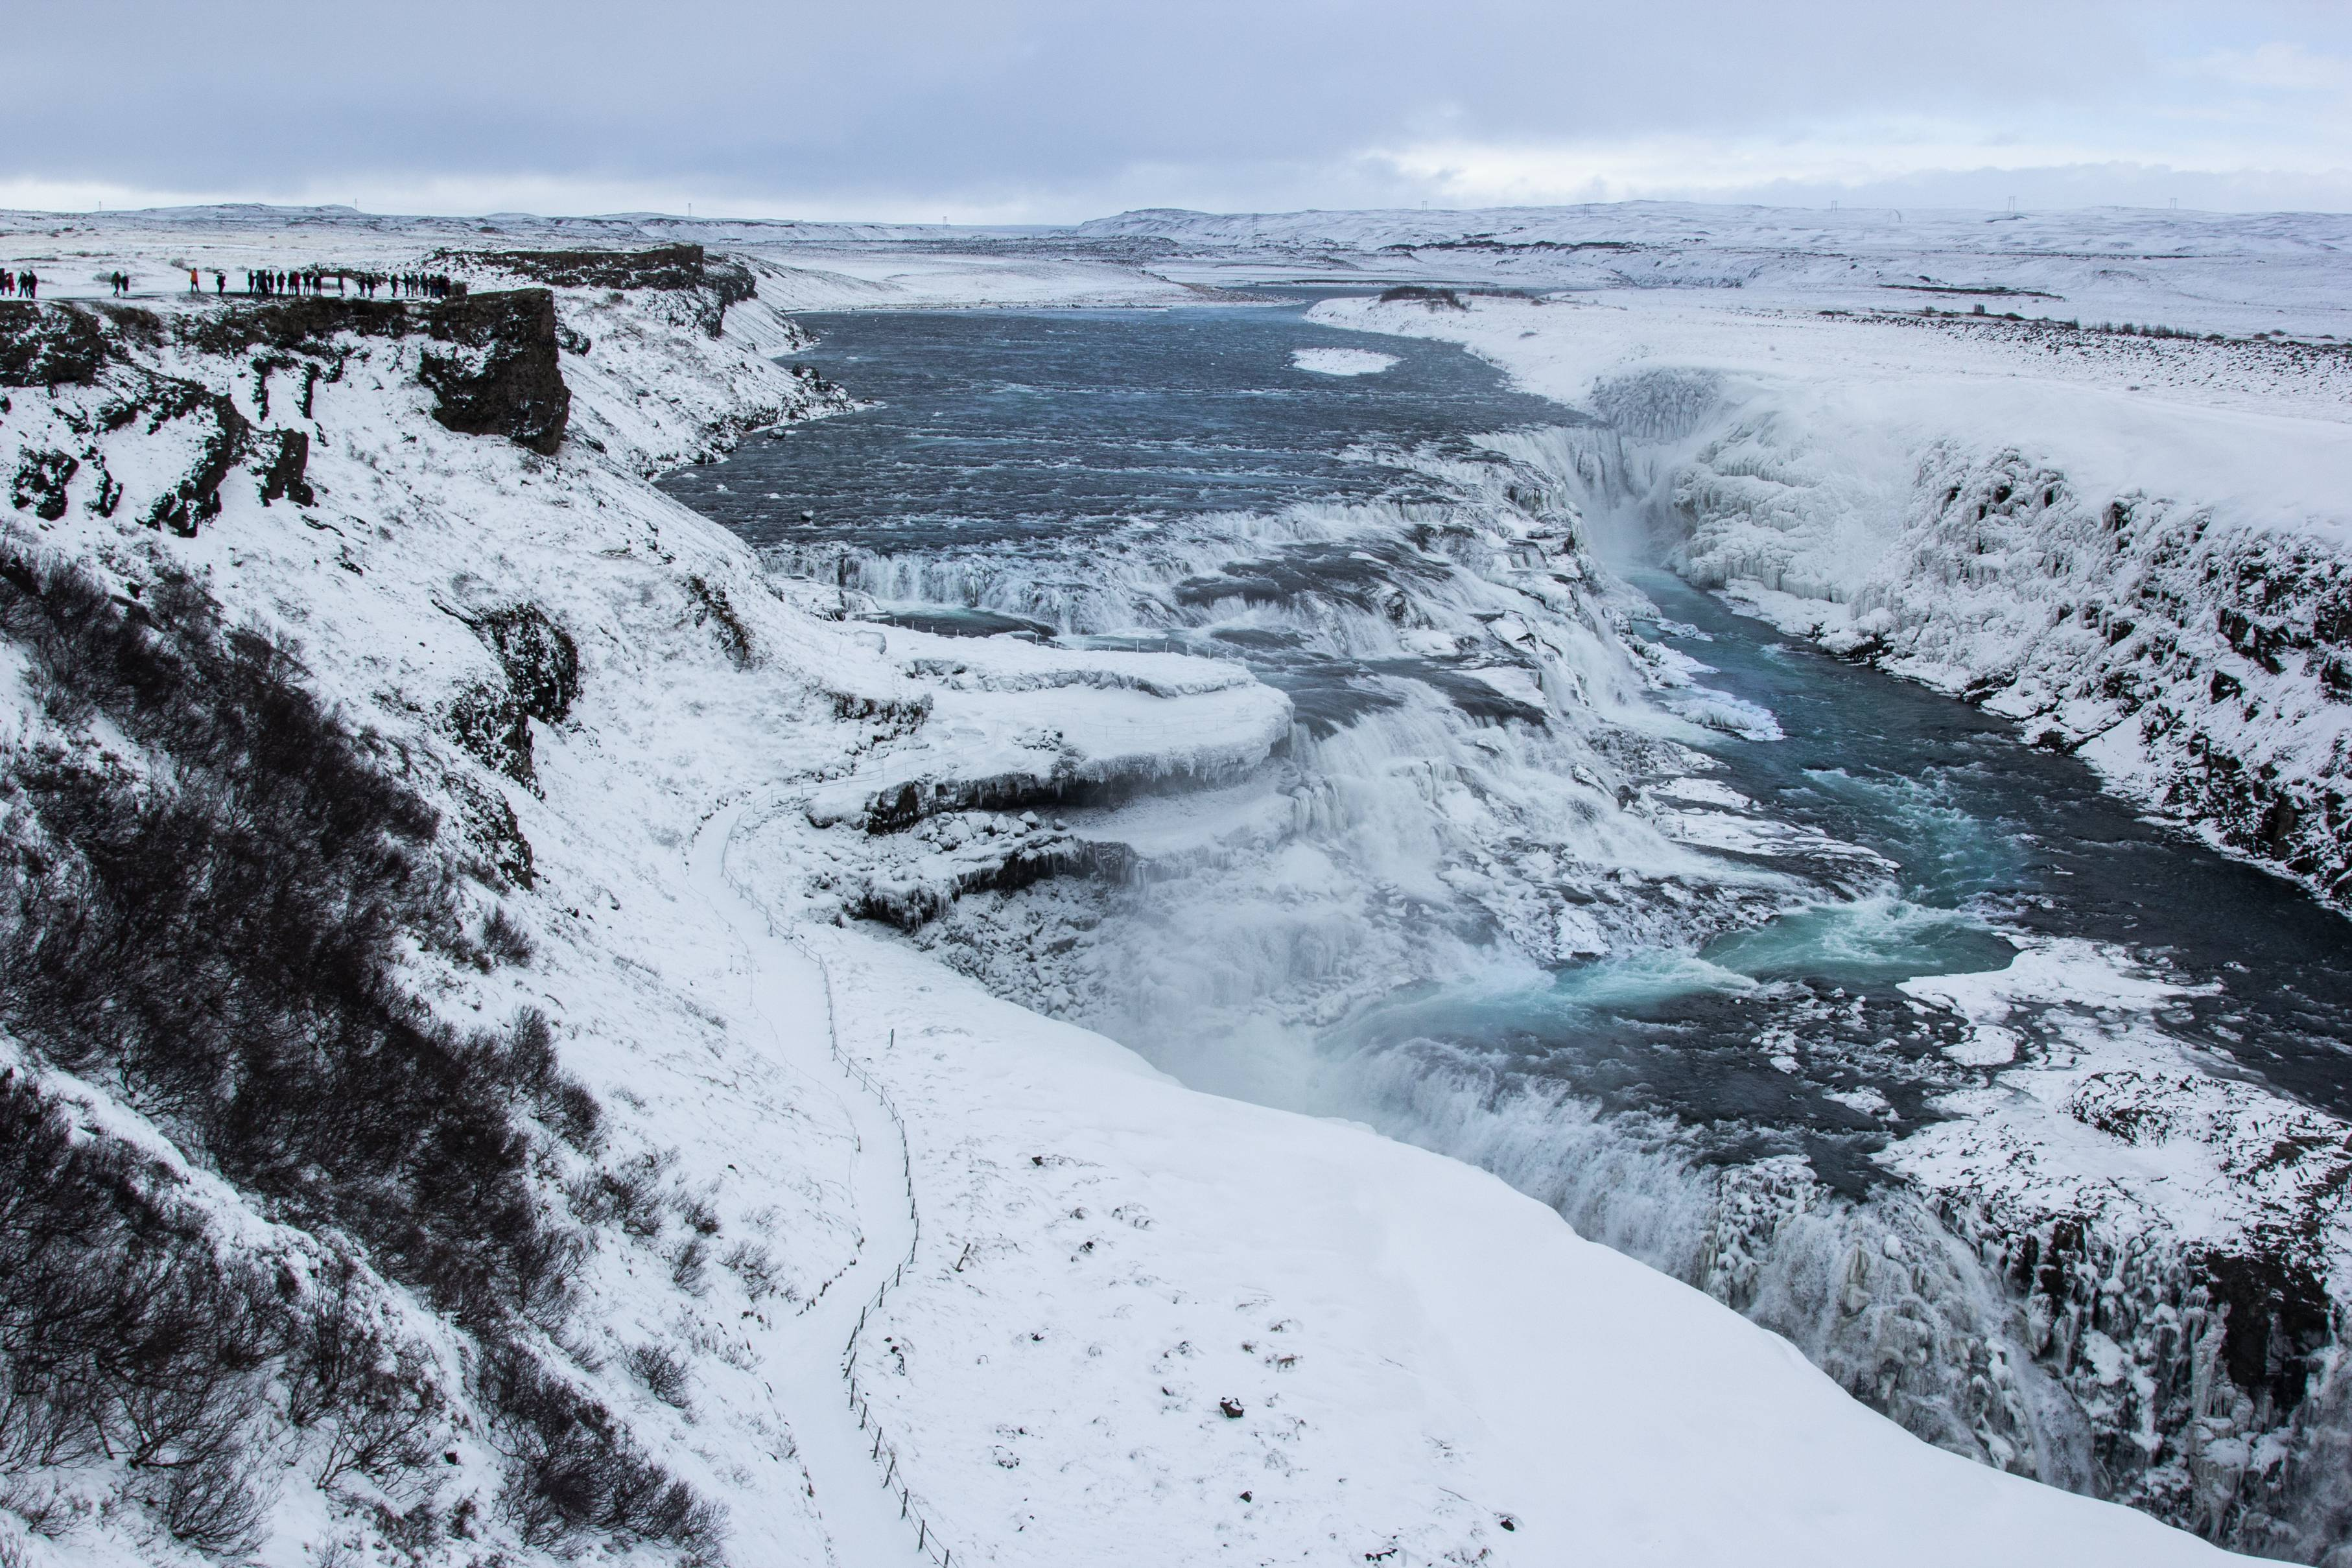 Gullfoss-waterfall-covered-in-snow-with-people-watching-from-a-cliff-side-above-on-the-left